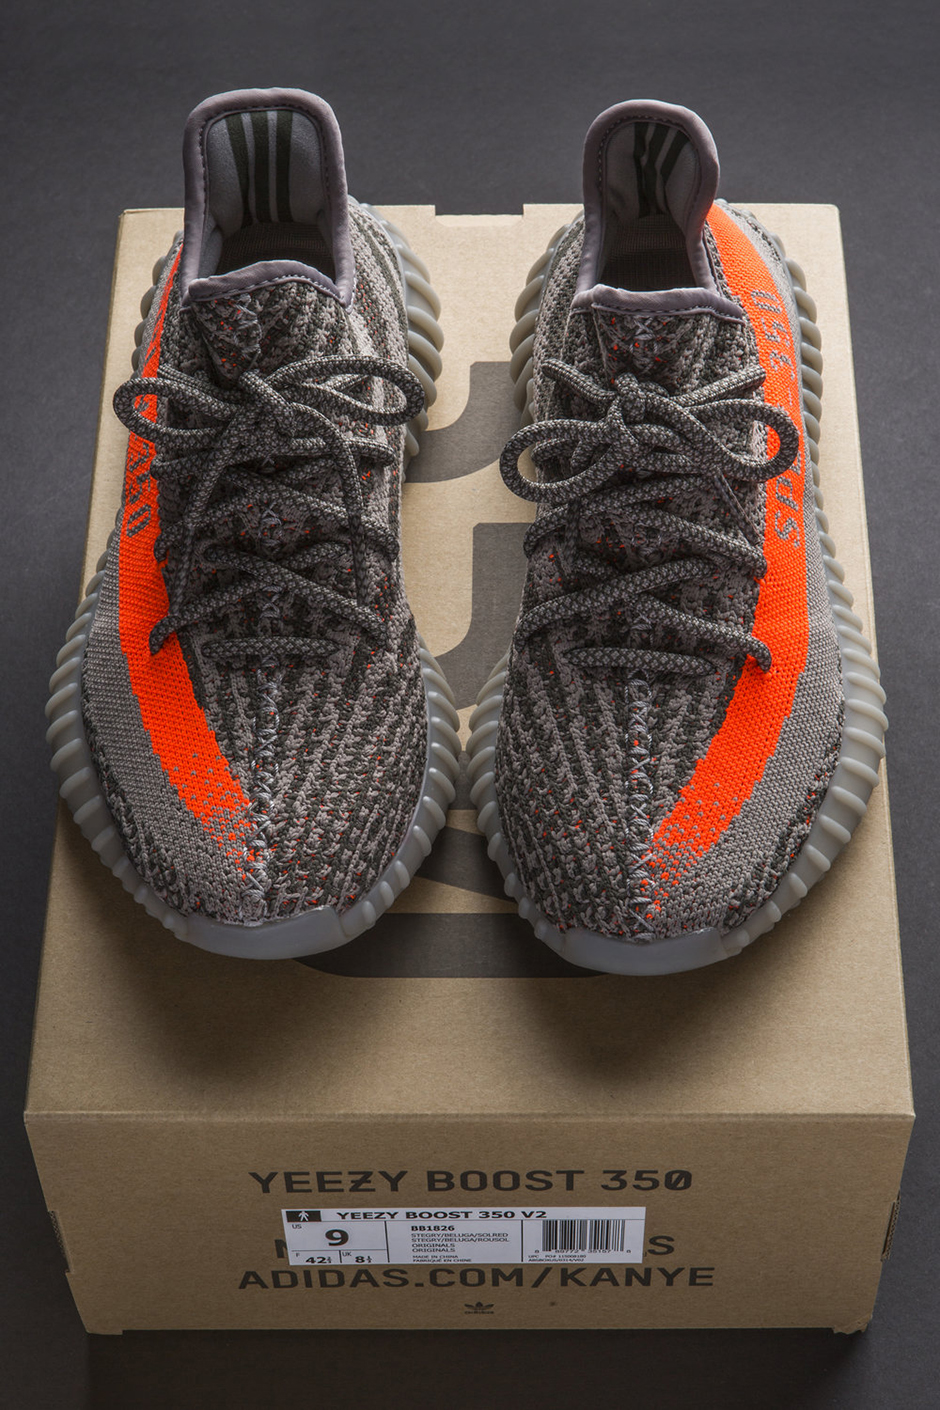 Adidas Yeezy Boost 350 V2 Core Black Copper in Stock Yeezy 350